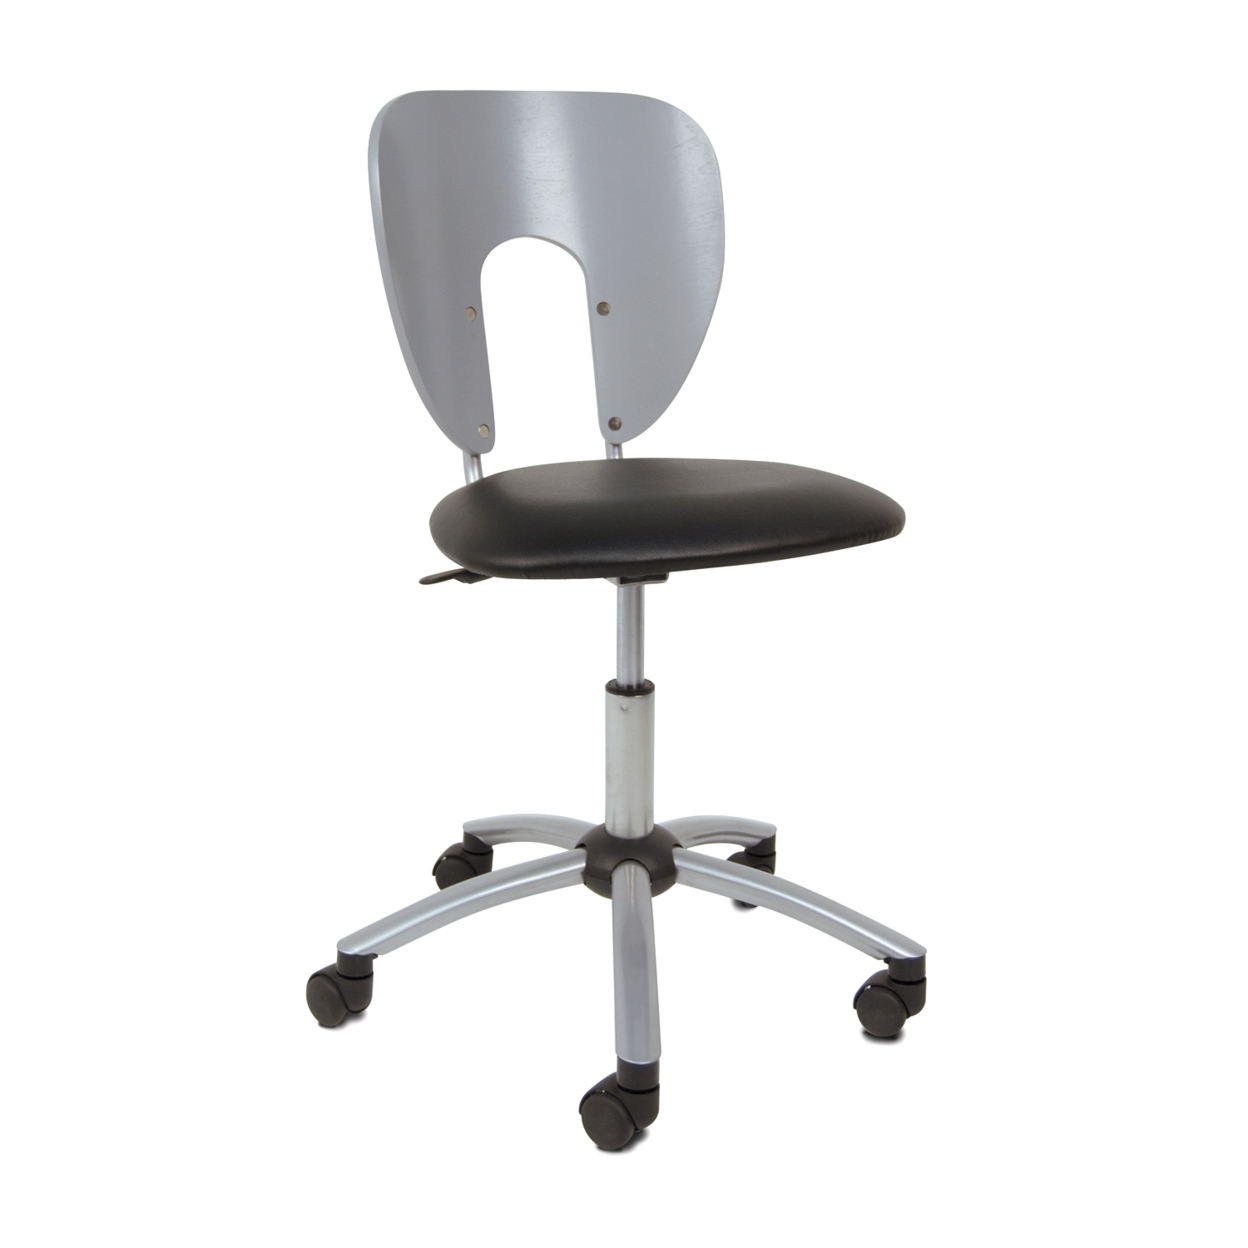 Offex Home Office Futura Chair - Silver the silver chair